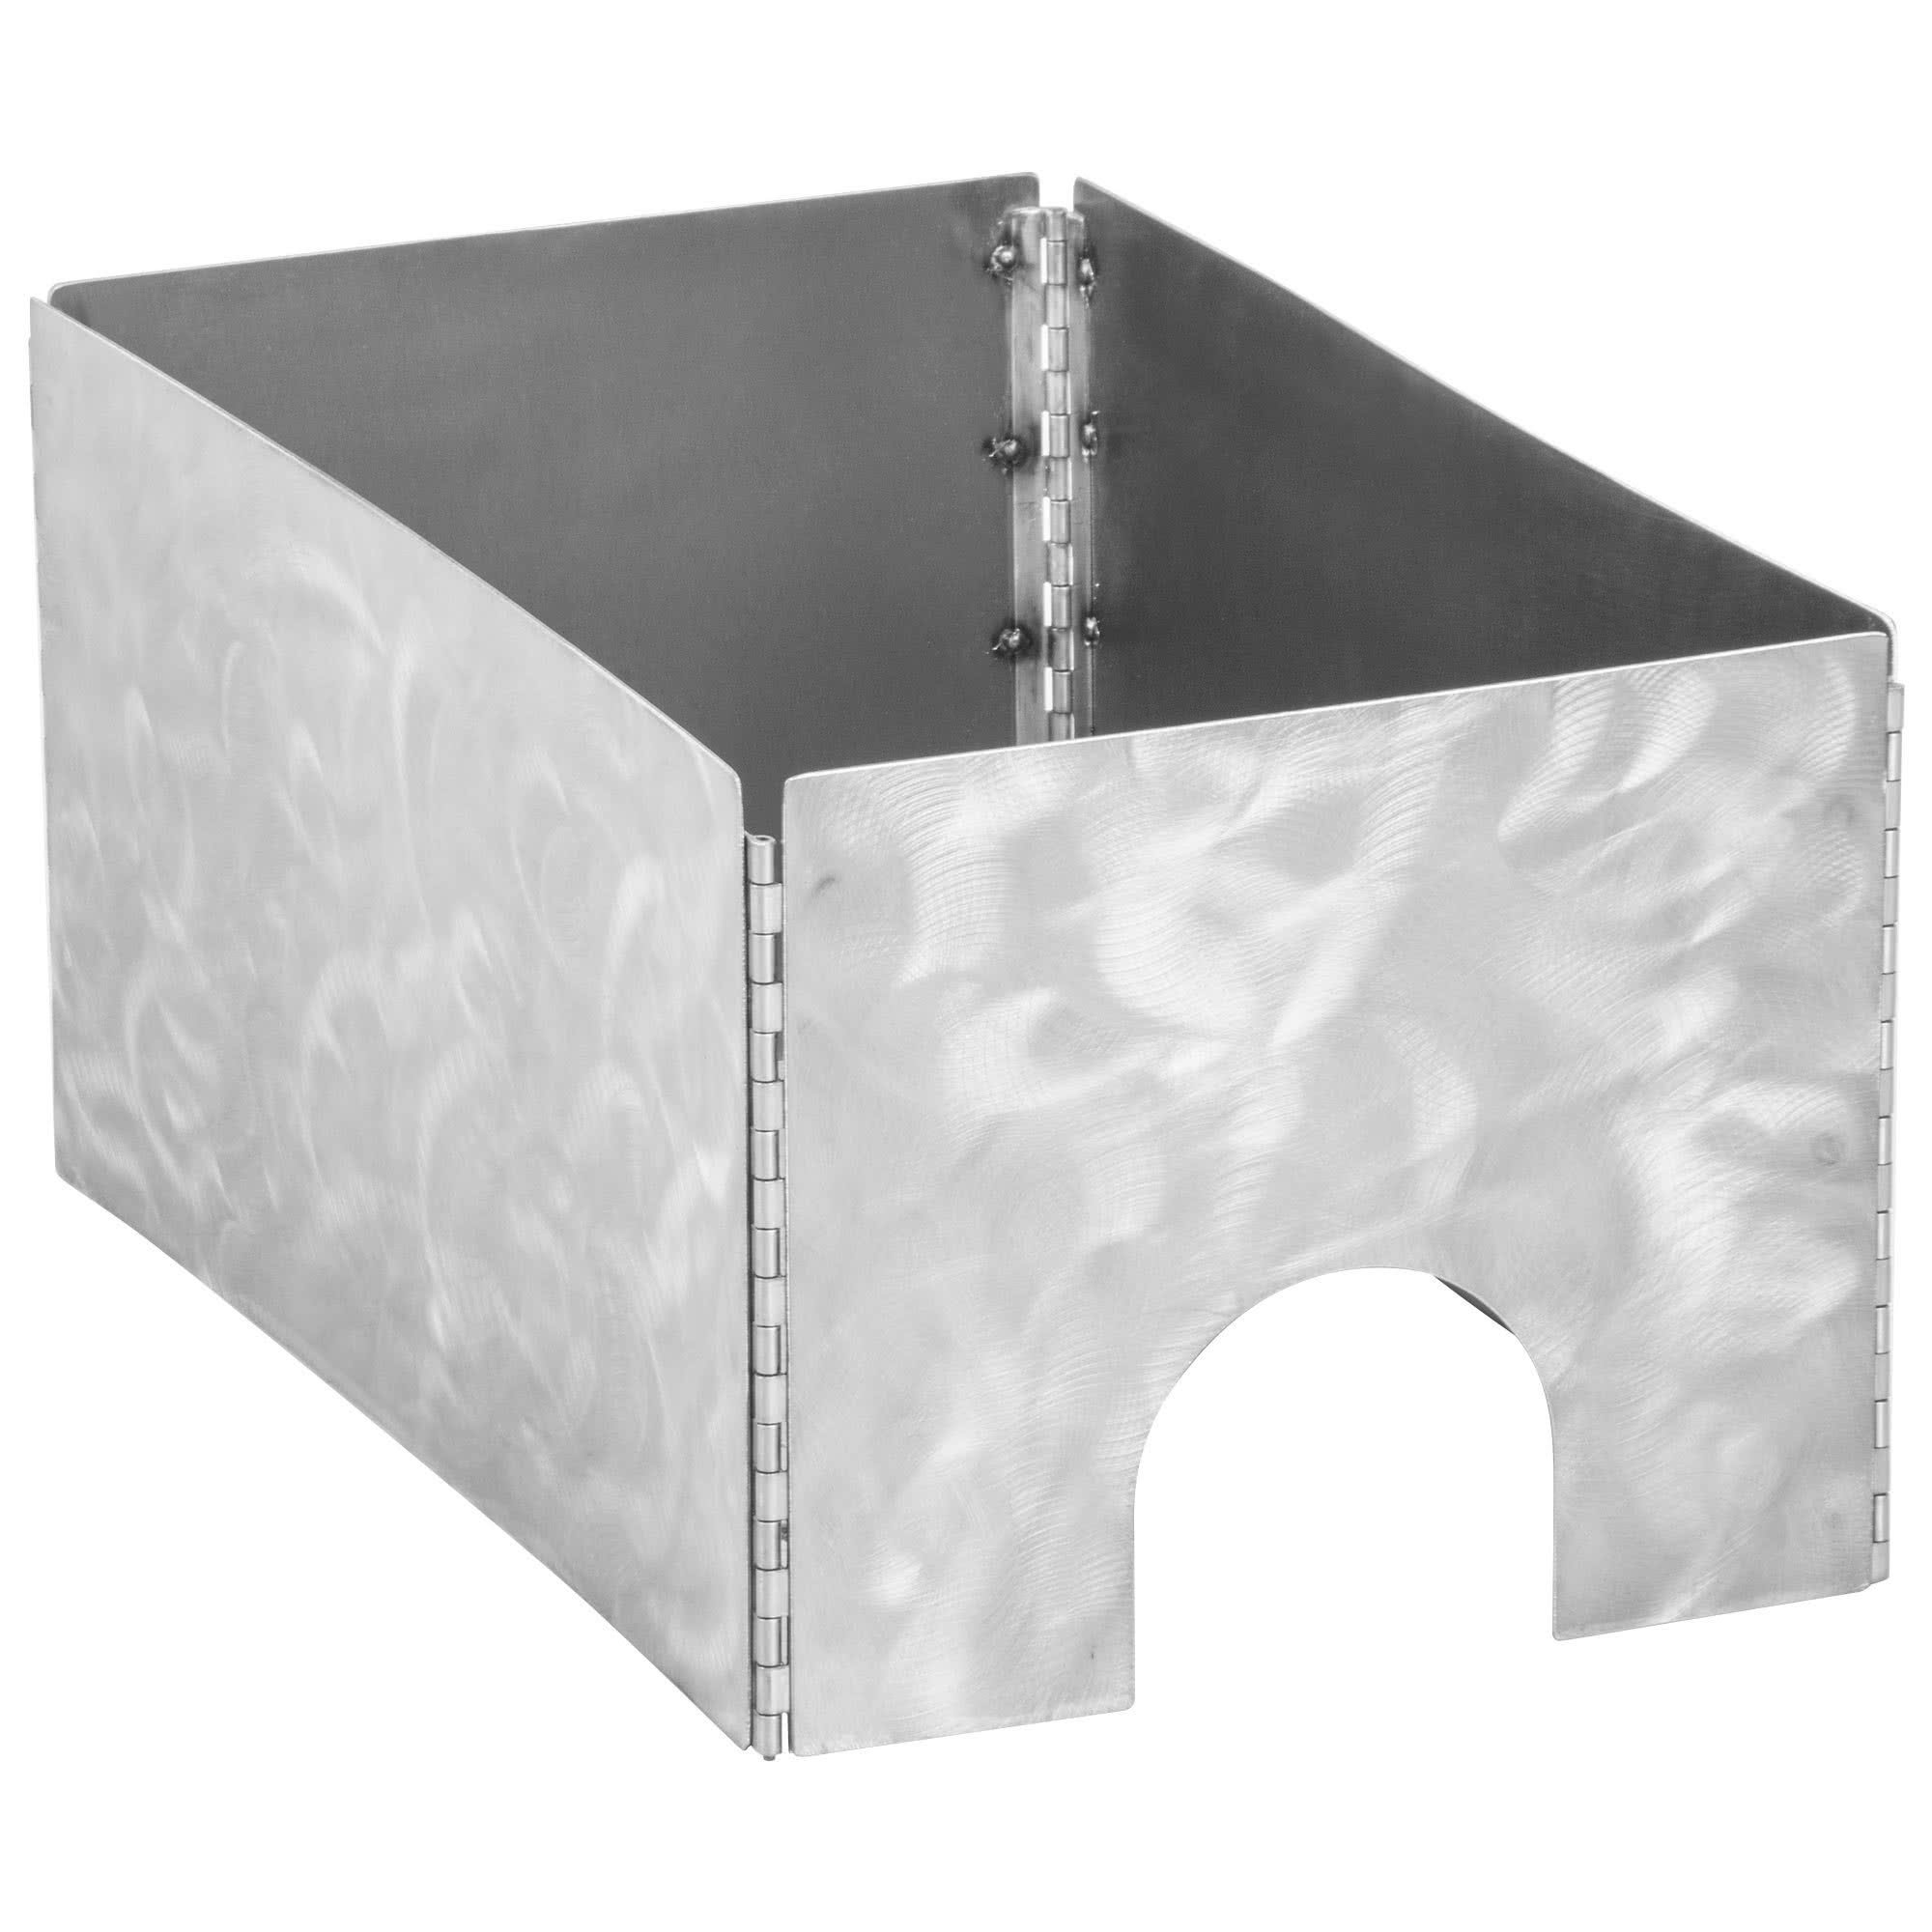 TableTop king Caterware CW600RSS 1-Well Collapsible 16 Gauge Random Swirl Stainless Steel Server - 12 1/2'' x 20 1/2'' x 10''